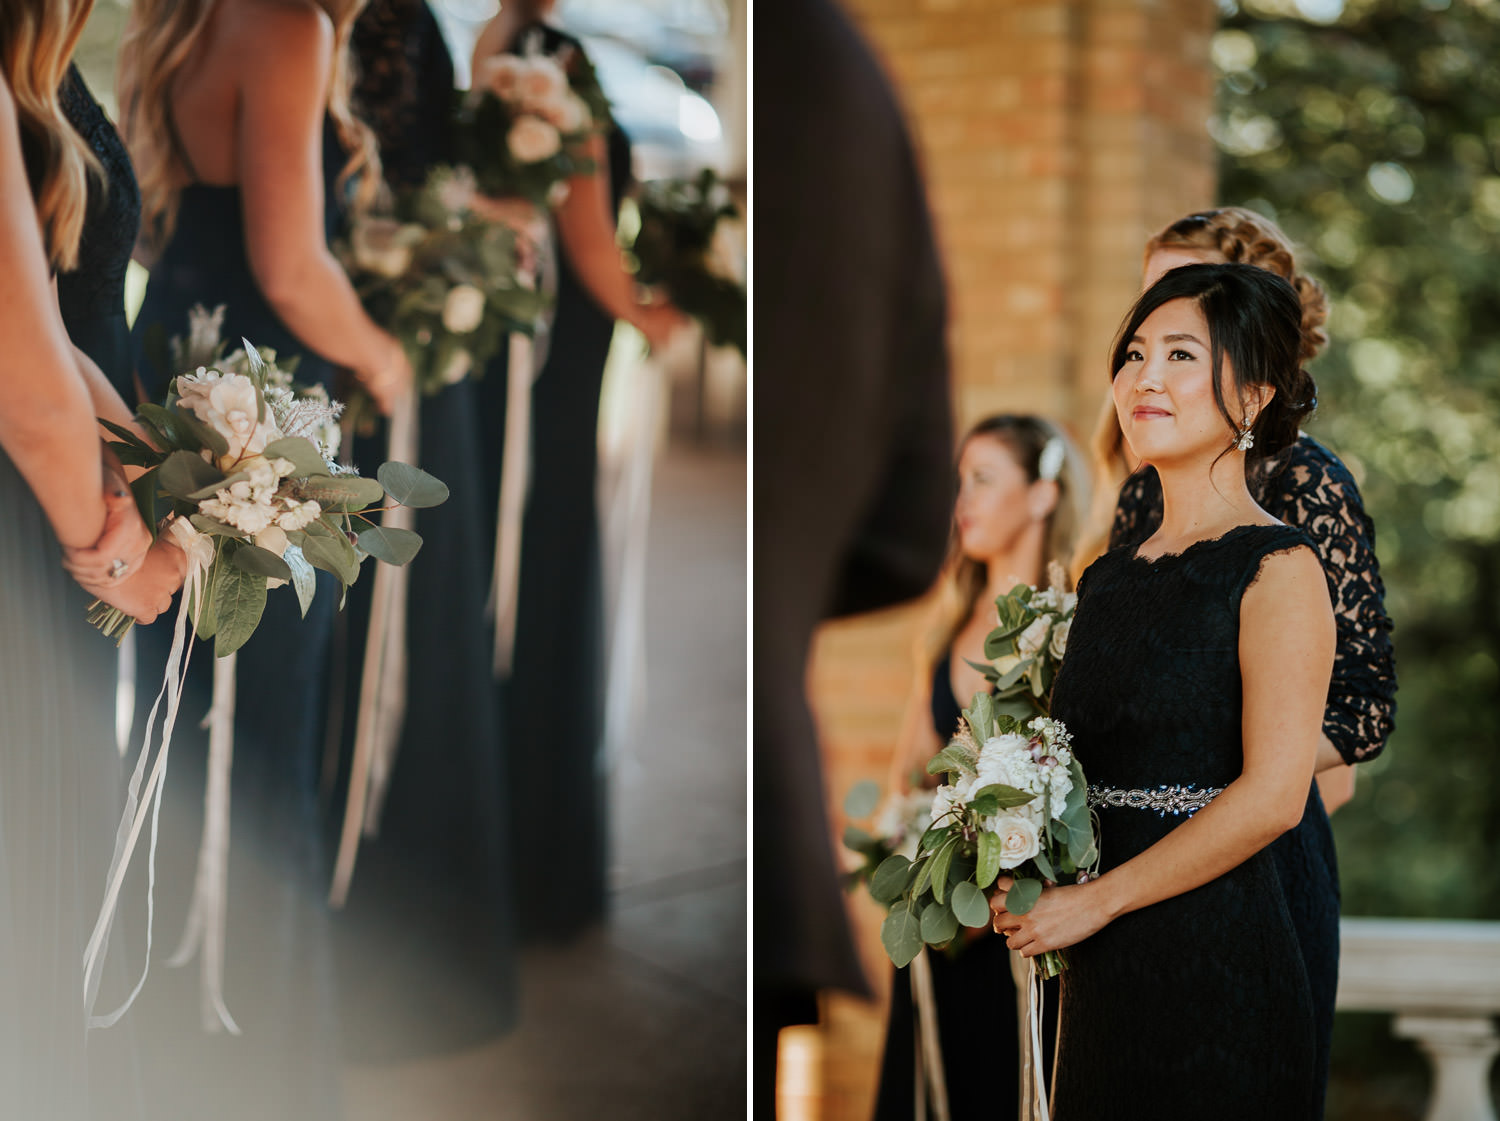 barmaids during the ceremony at Columbus Park Refectory